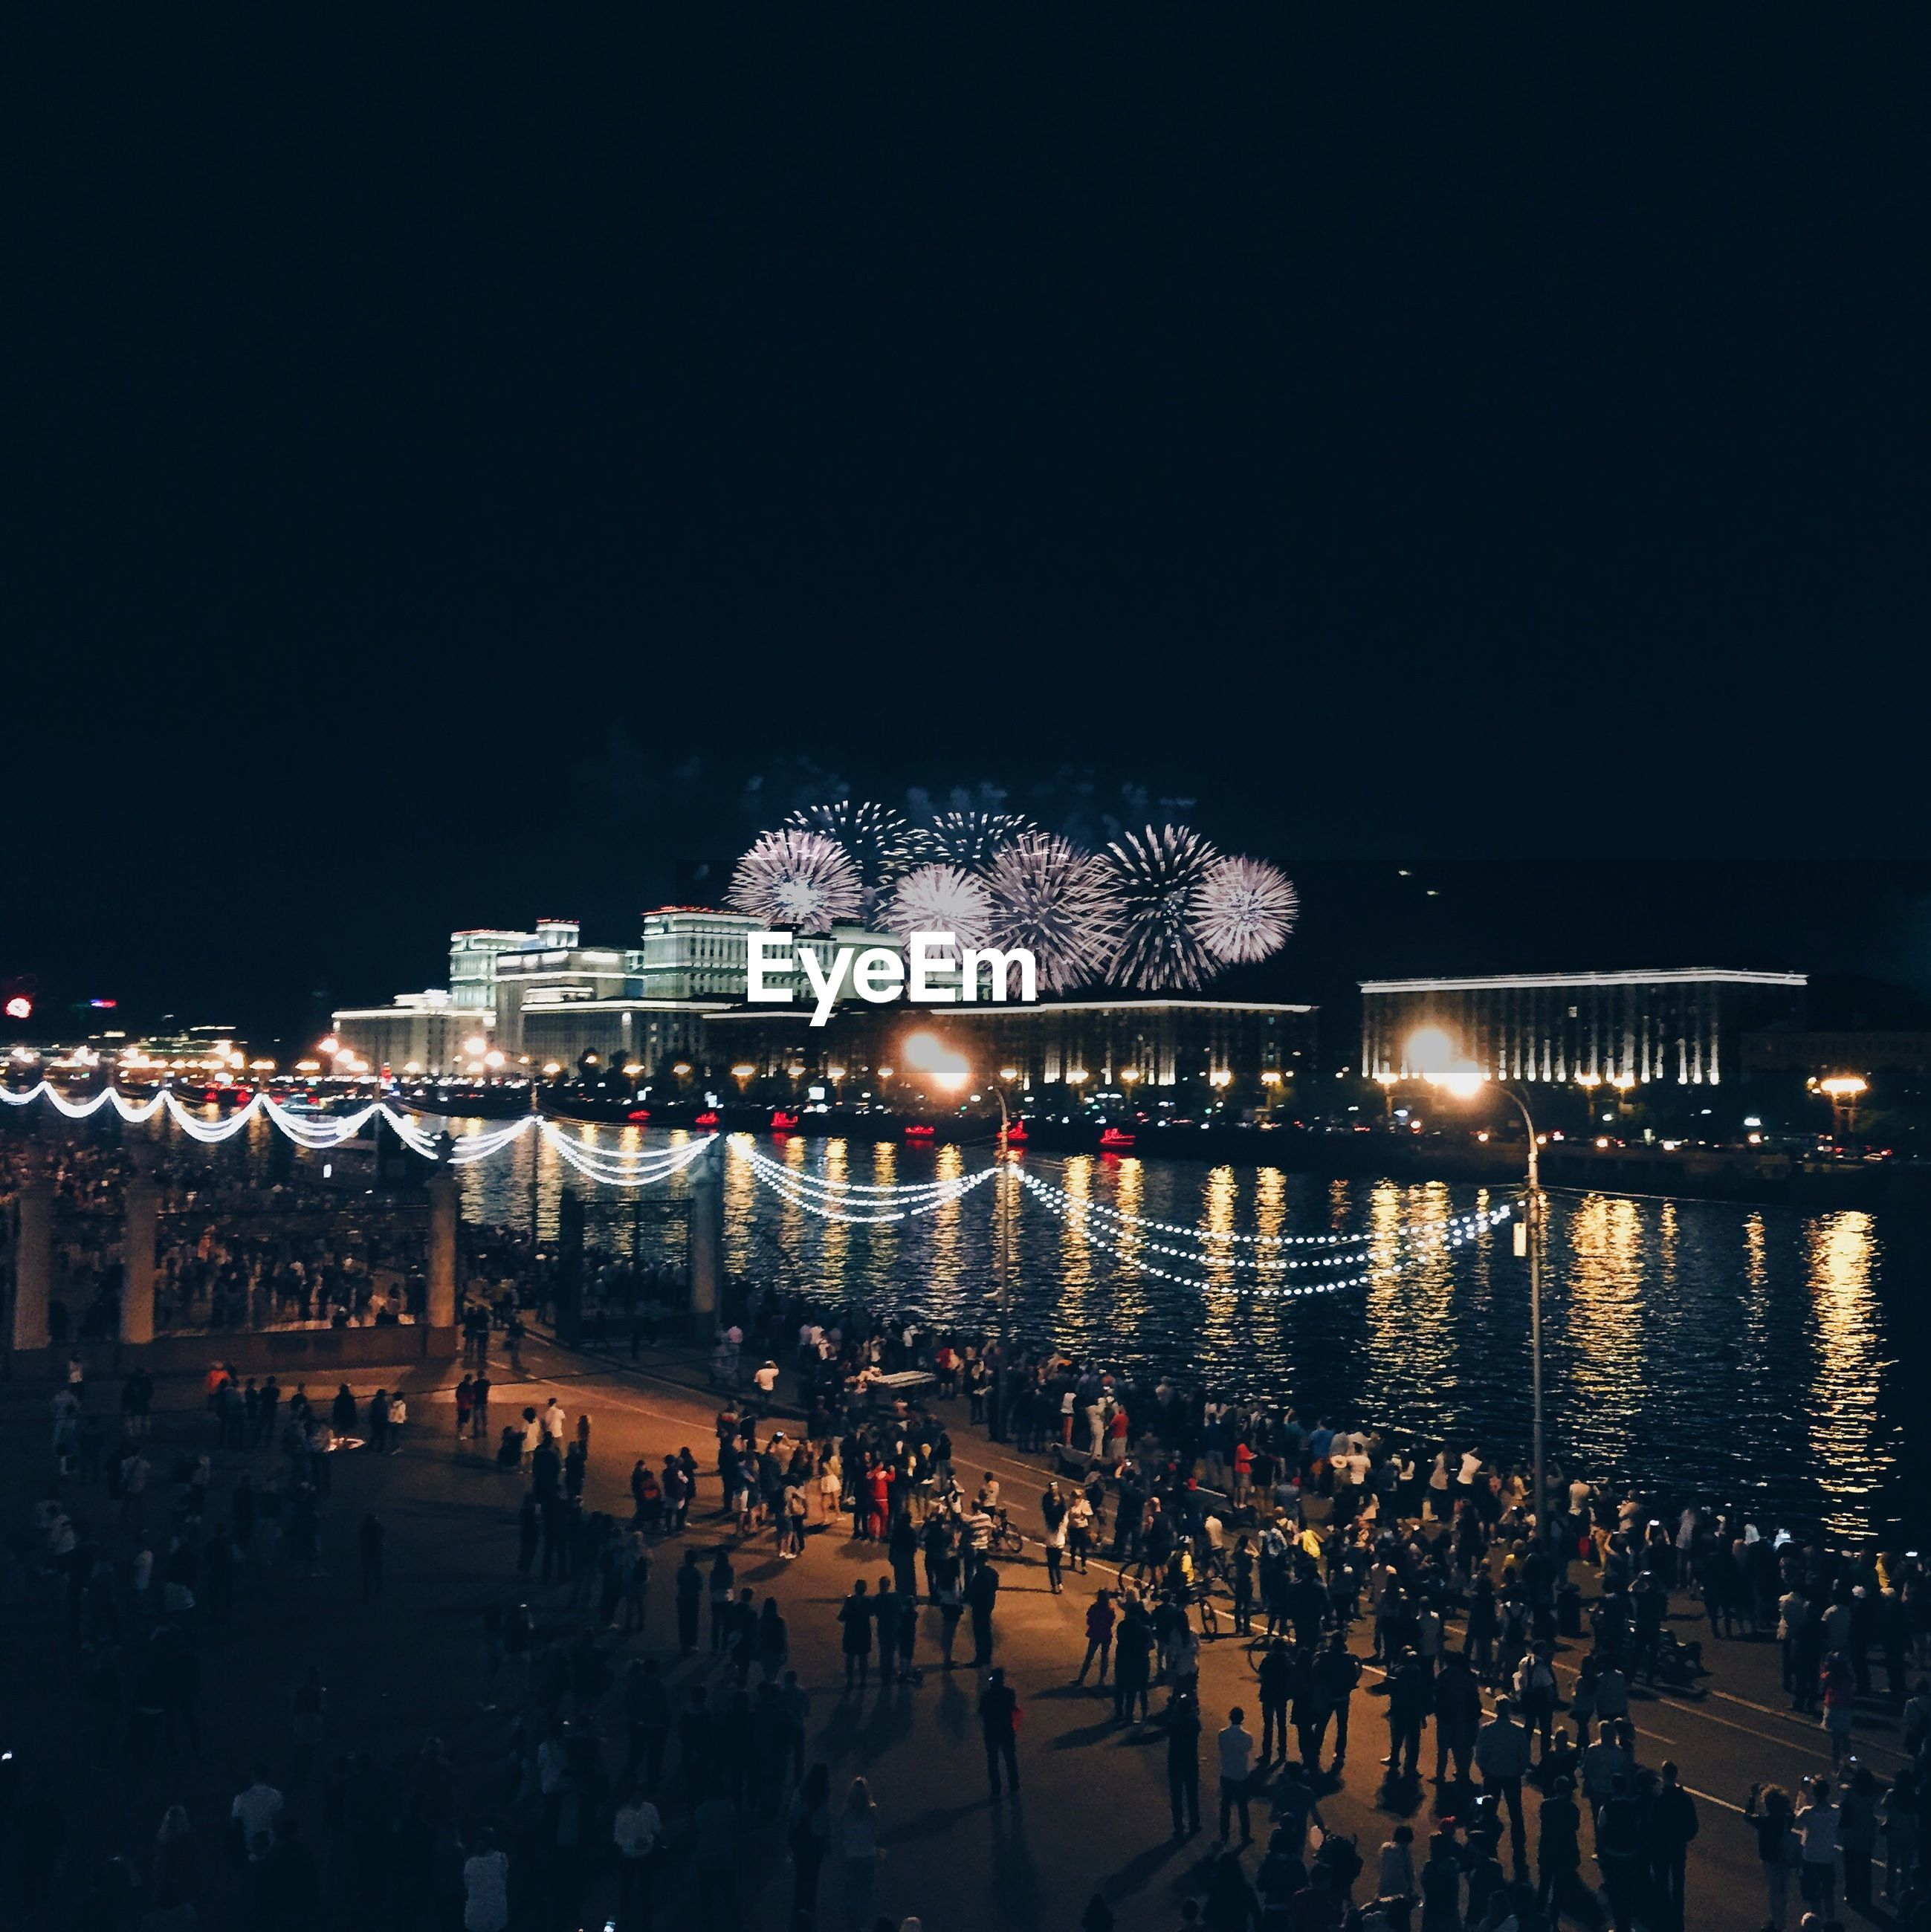 People on harbor looking at firework display above buildings against sky at night